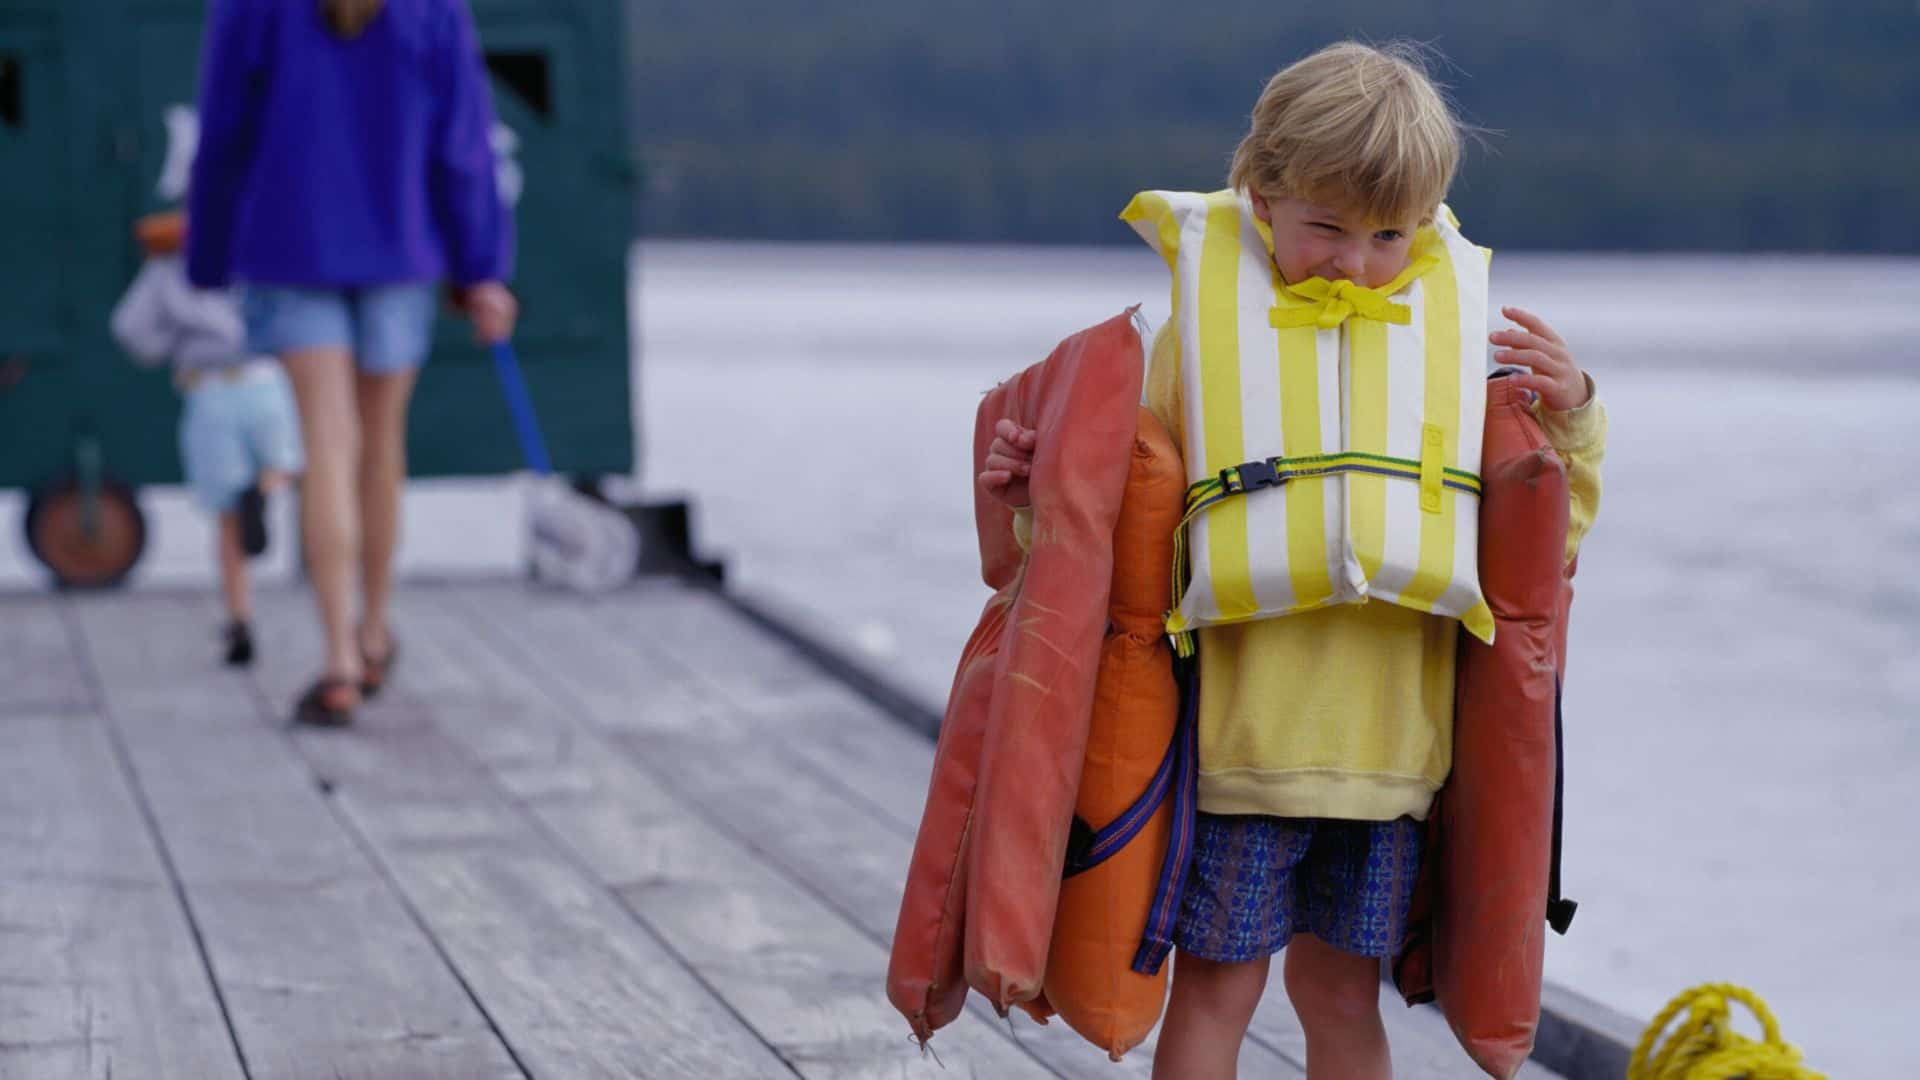 young boy carrying life jackets